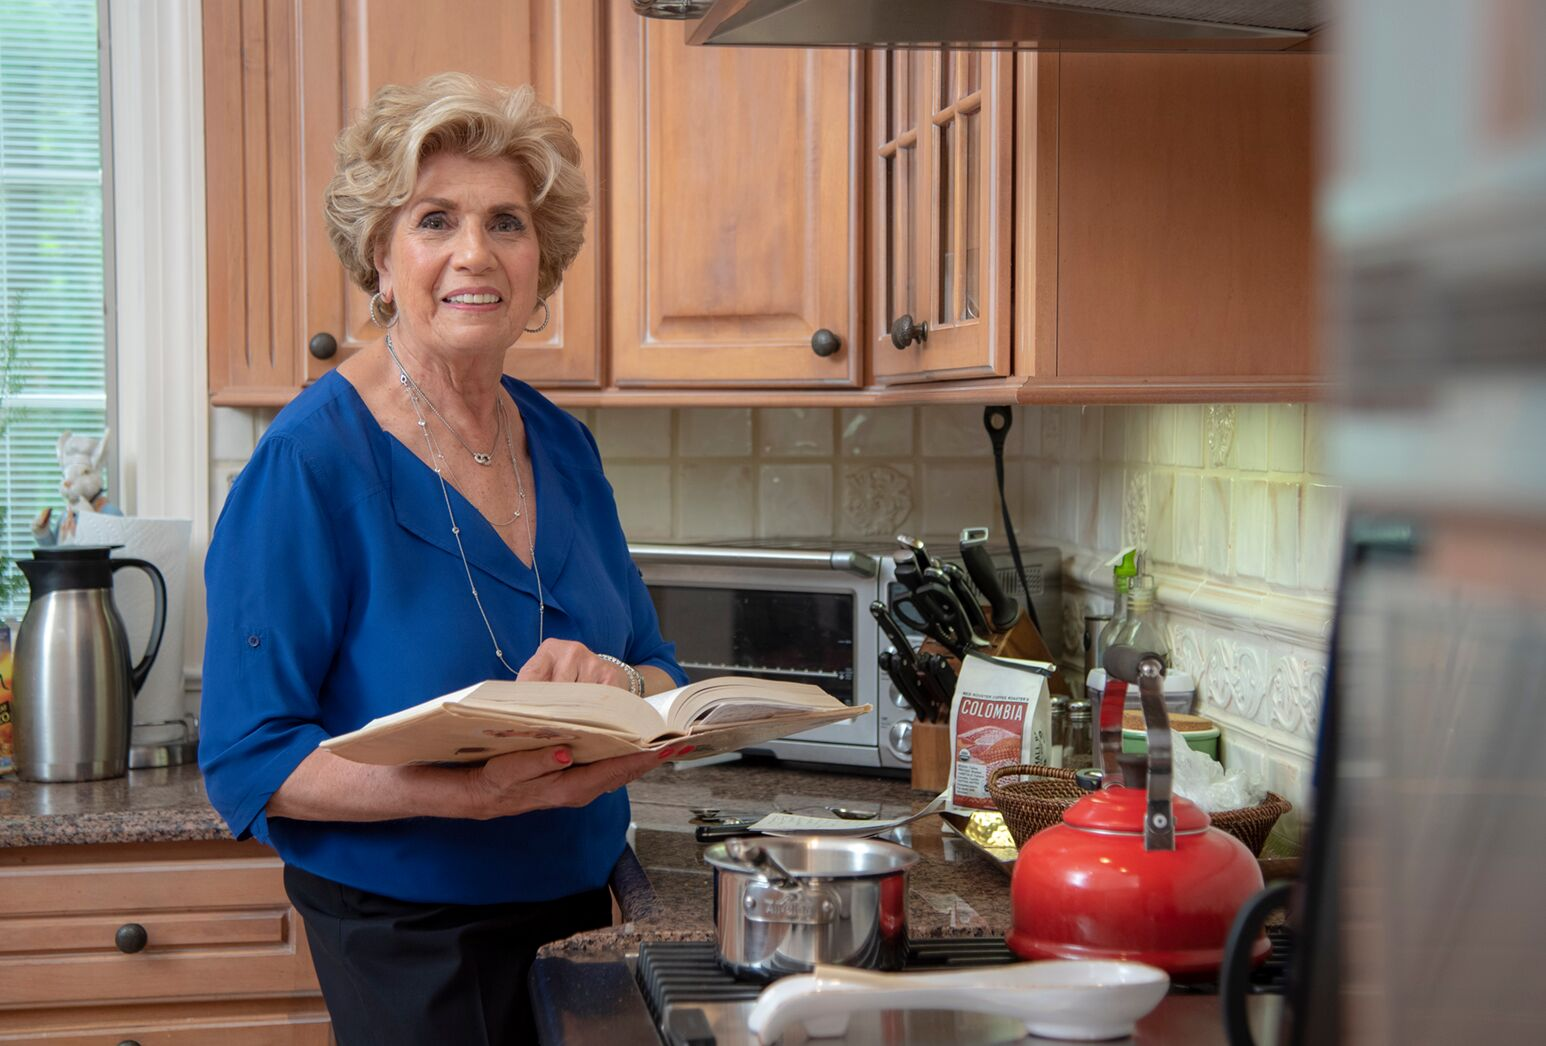 Woman in her 70s in kitchen with cookbook preparing a meal.